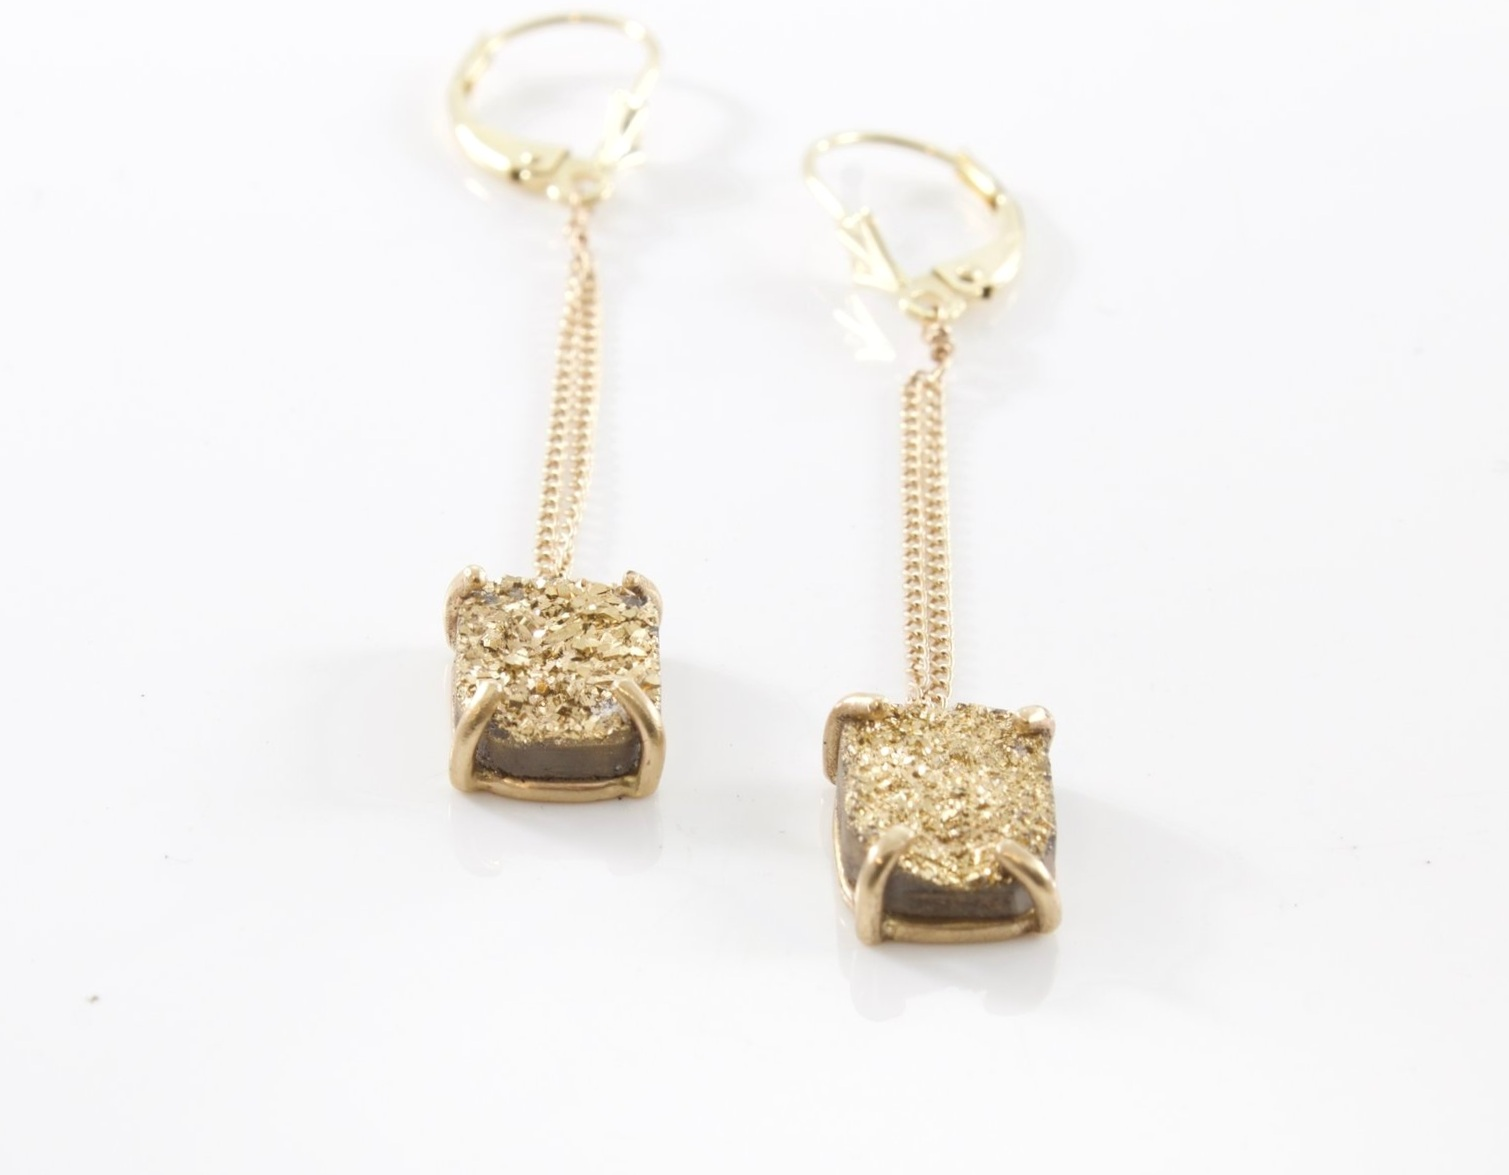 14k gold and Druzy Earrings